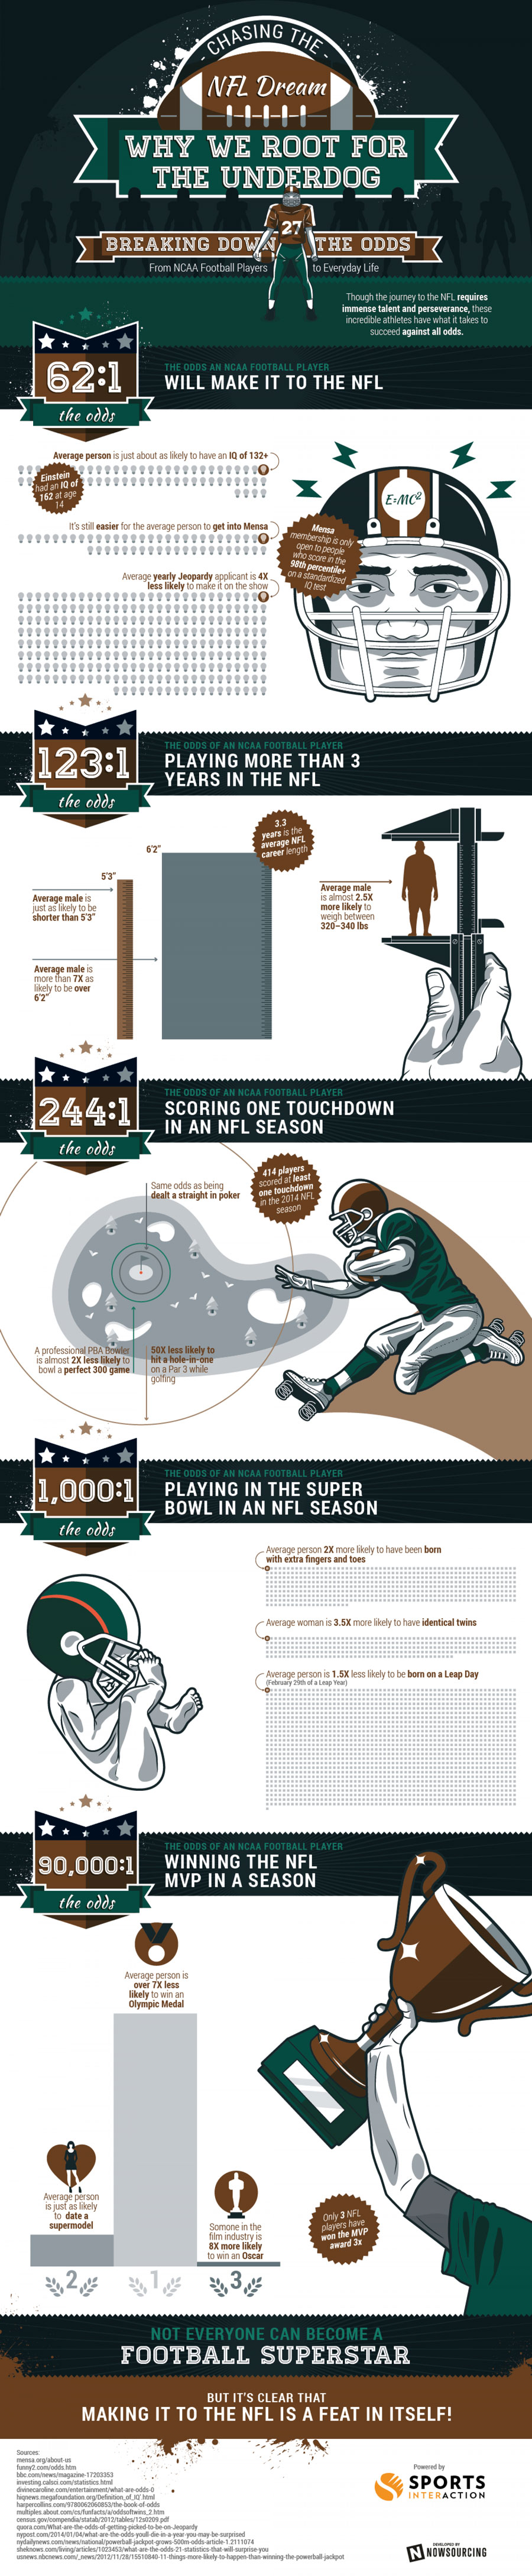 odds of making it to the nfl - The peculiar history between the NY Jets and Baltimore Ravens